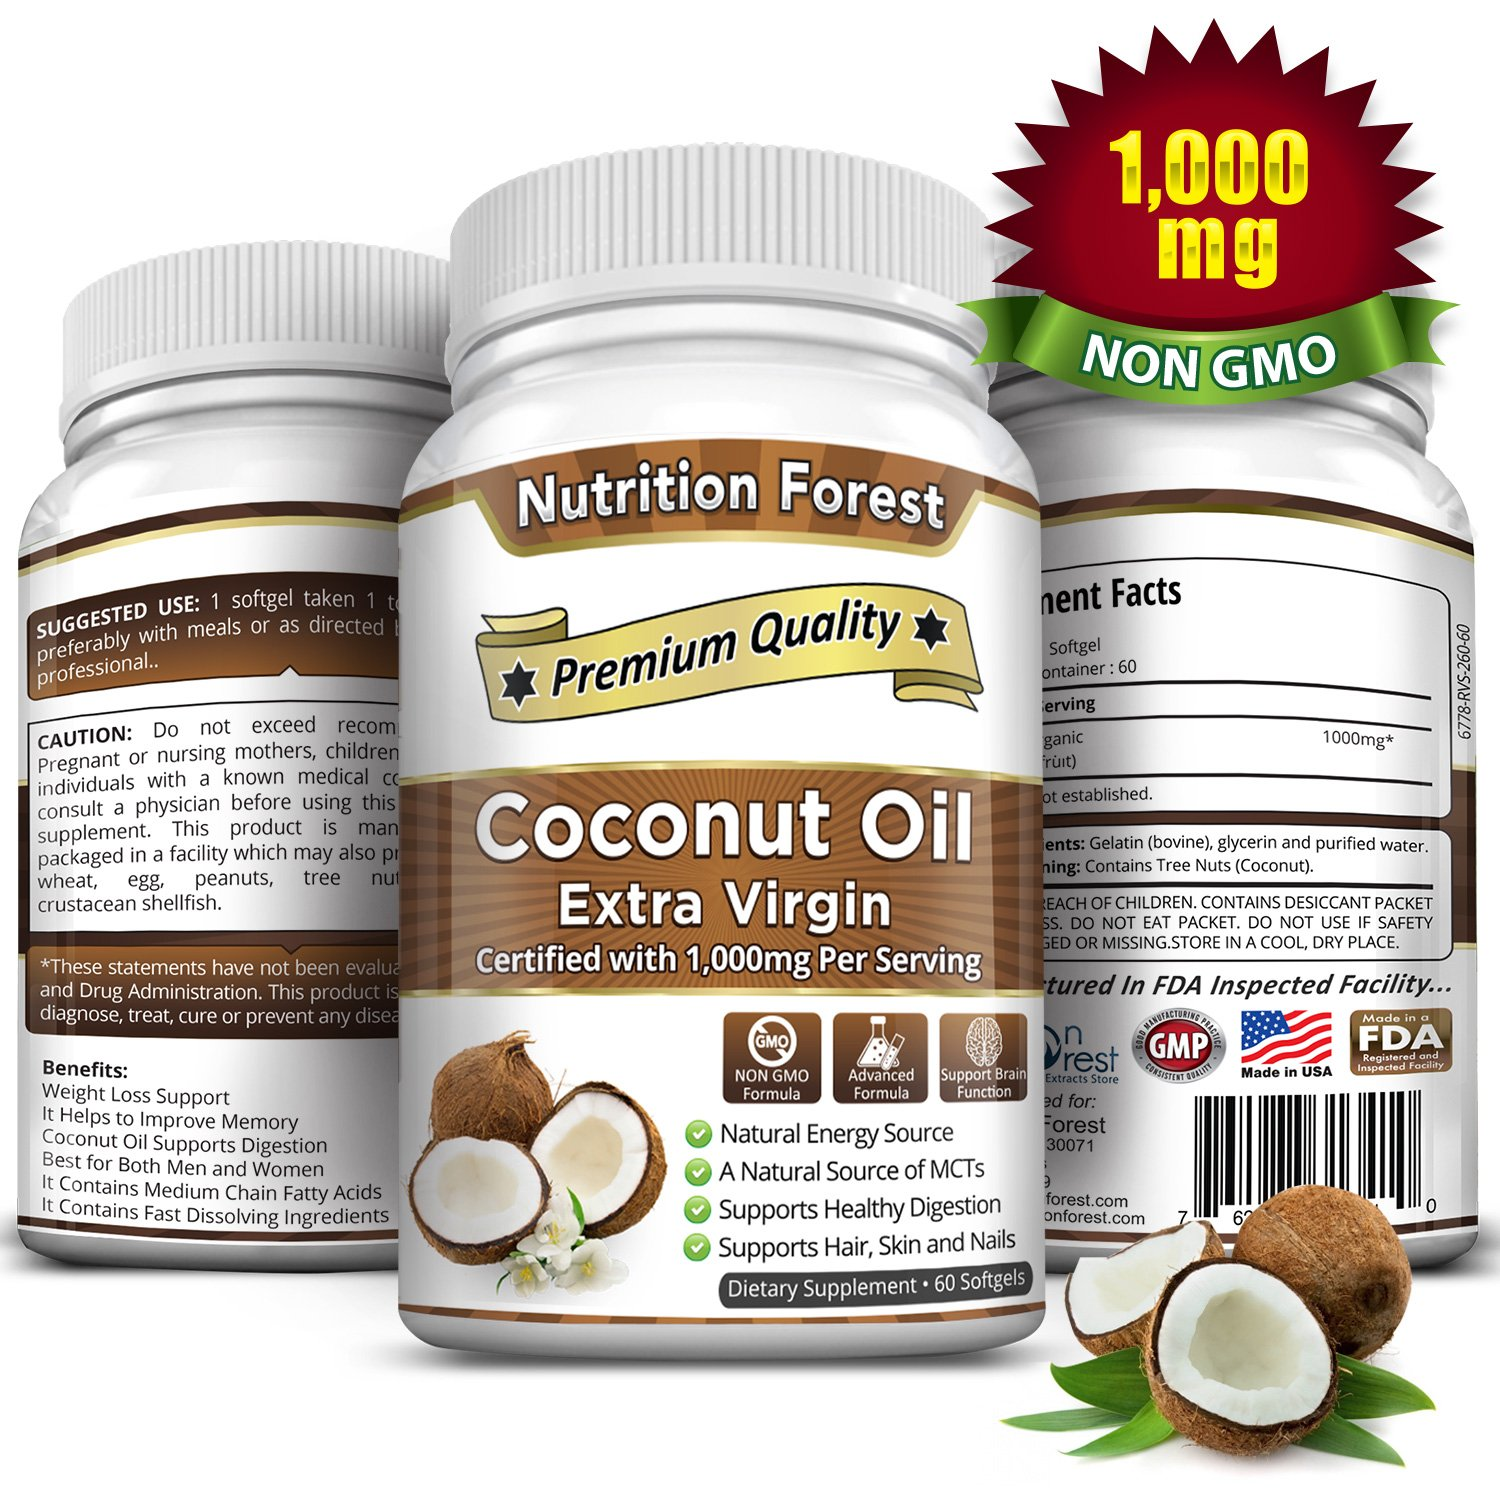 Organic Coconut Oil Capsules / Softgel 1000mg/Serving Extra Virgin, Non GMO for Weight Loss, Better Hair Growth and Healthy Skin. by Nutrition Forest